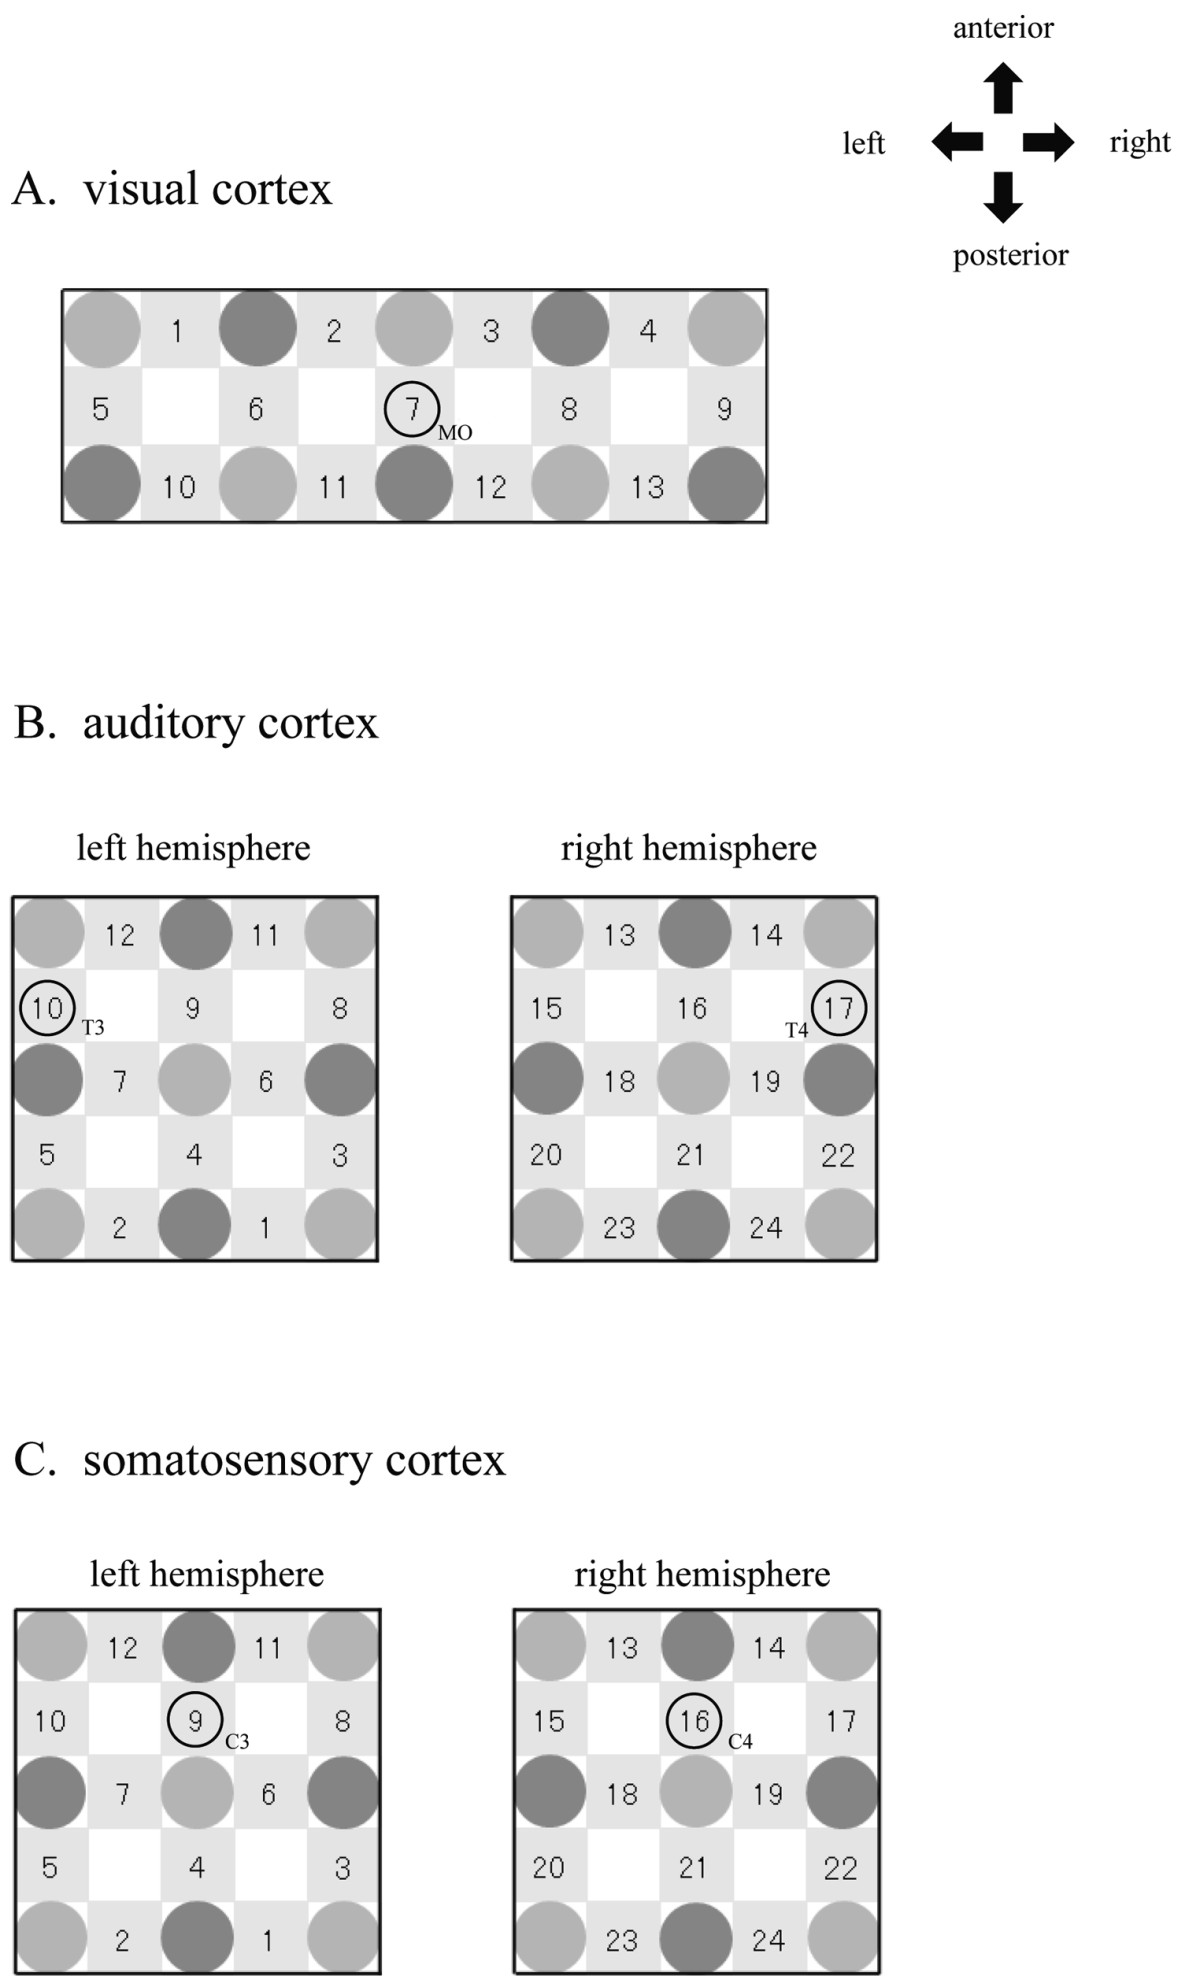 https://static-content.springer.com/image/art%3A10.1186%2F1880-6805-31-31/MediaObjects/40101_2012_Article_29_Fig2_HTML.jpg